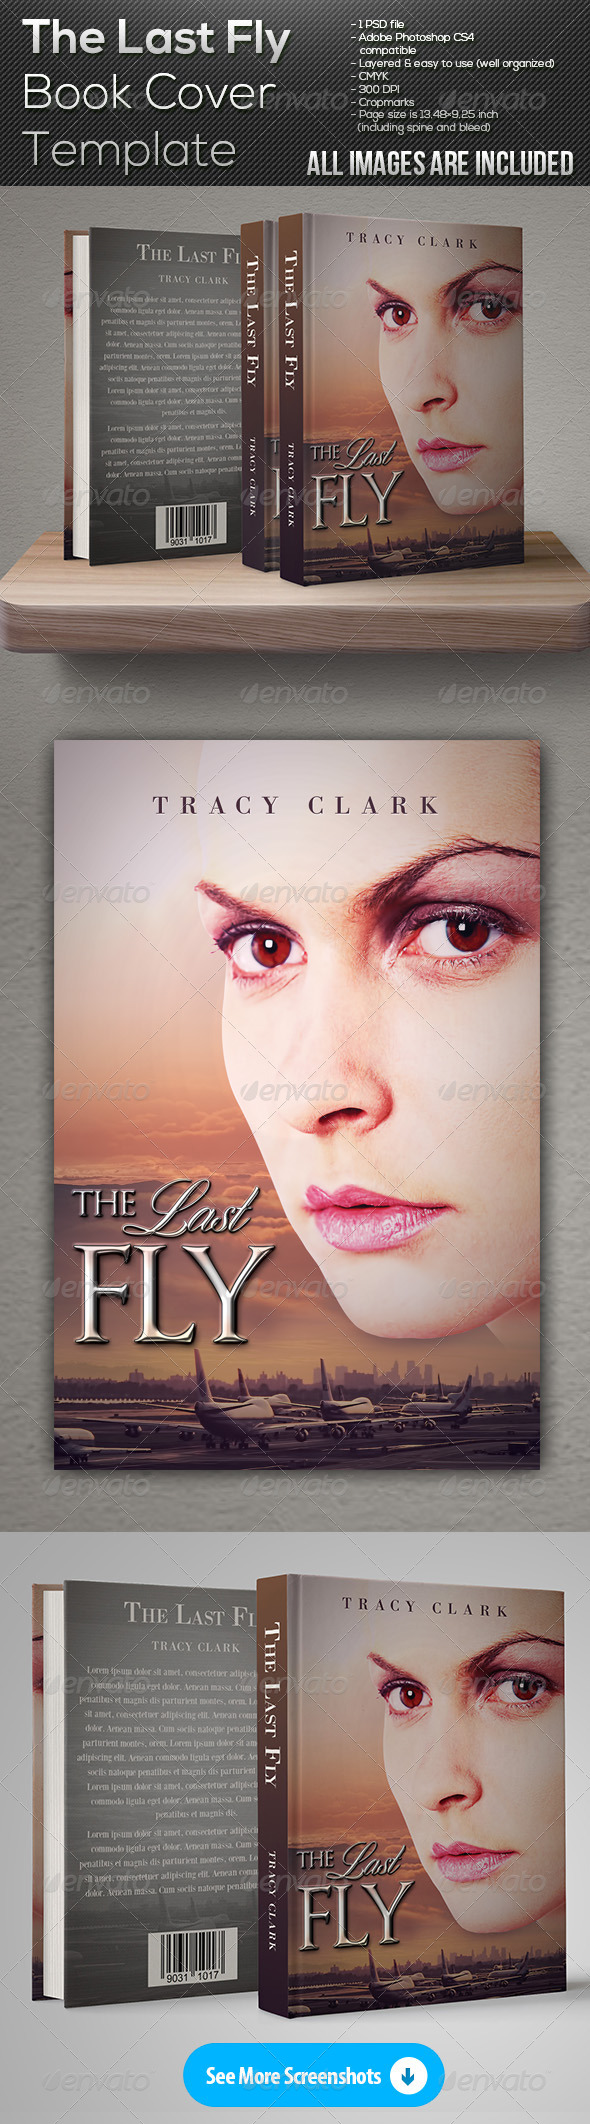 GraphicRiver The Last Fly Book Cover Template 7660425